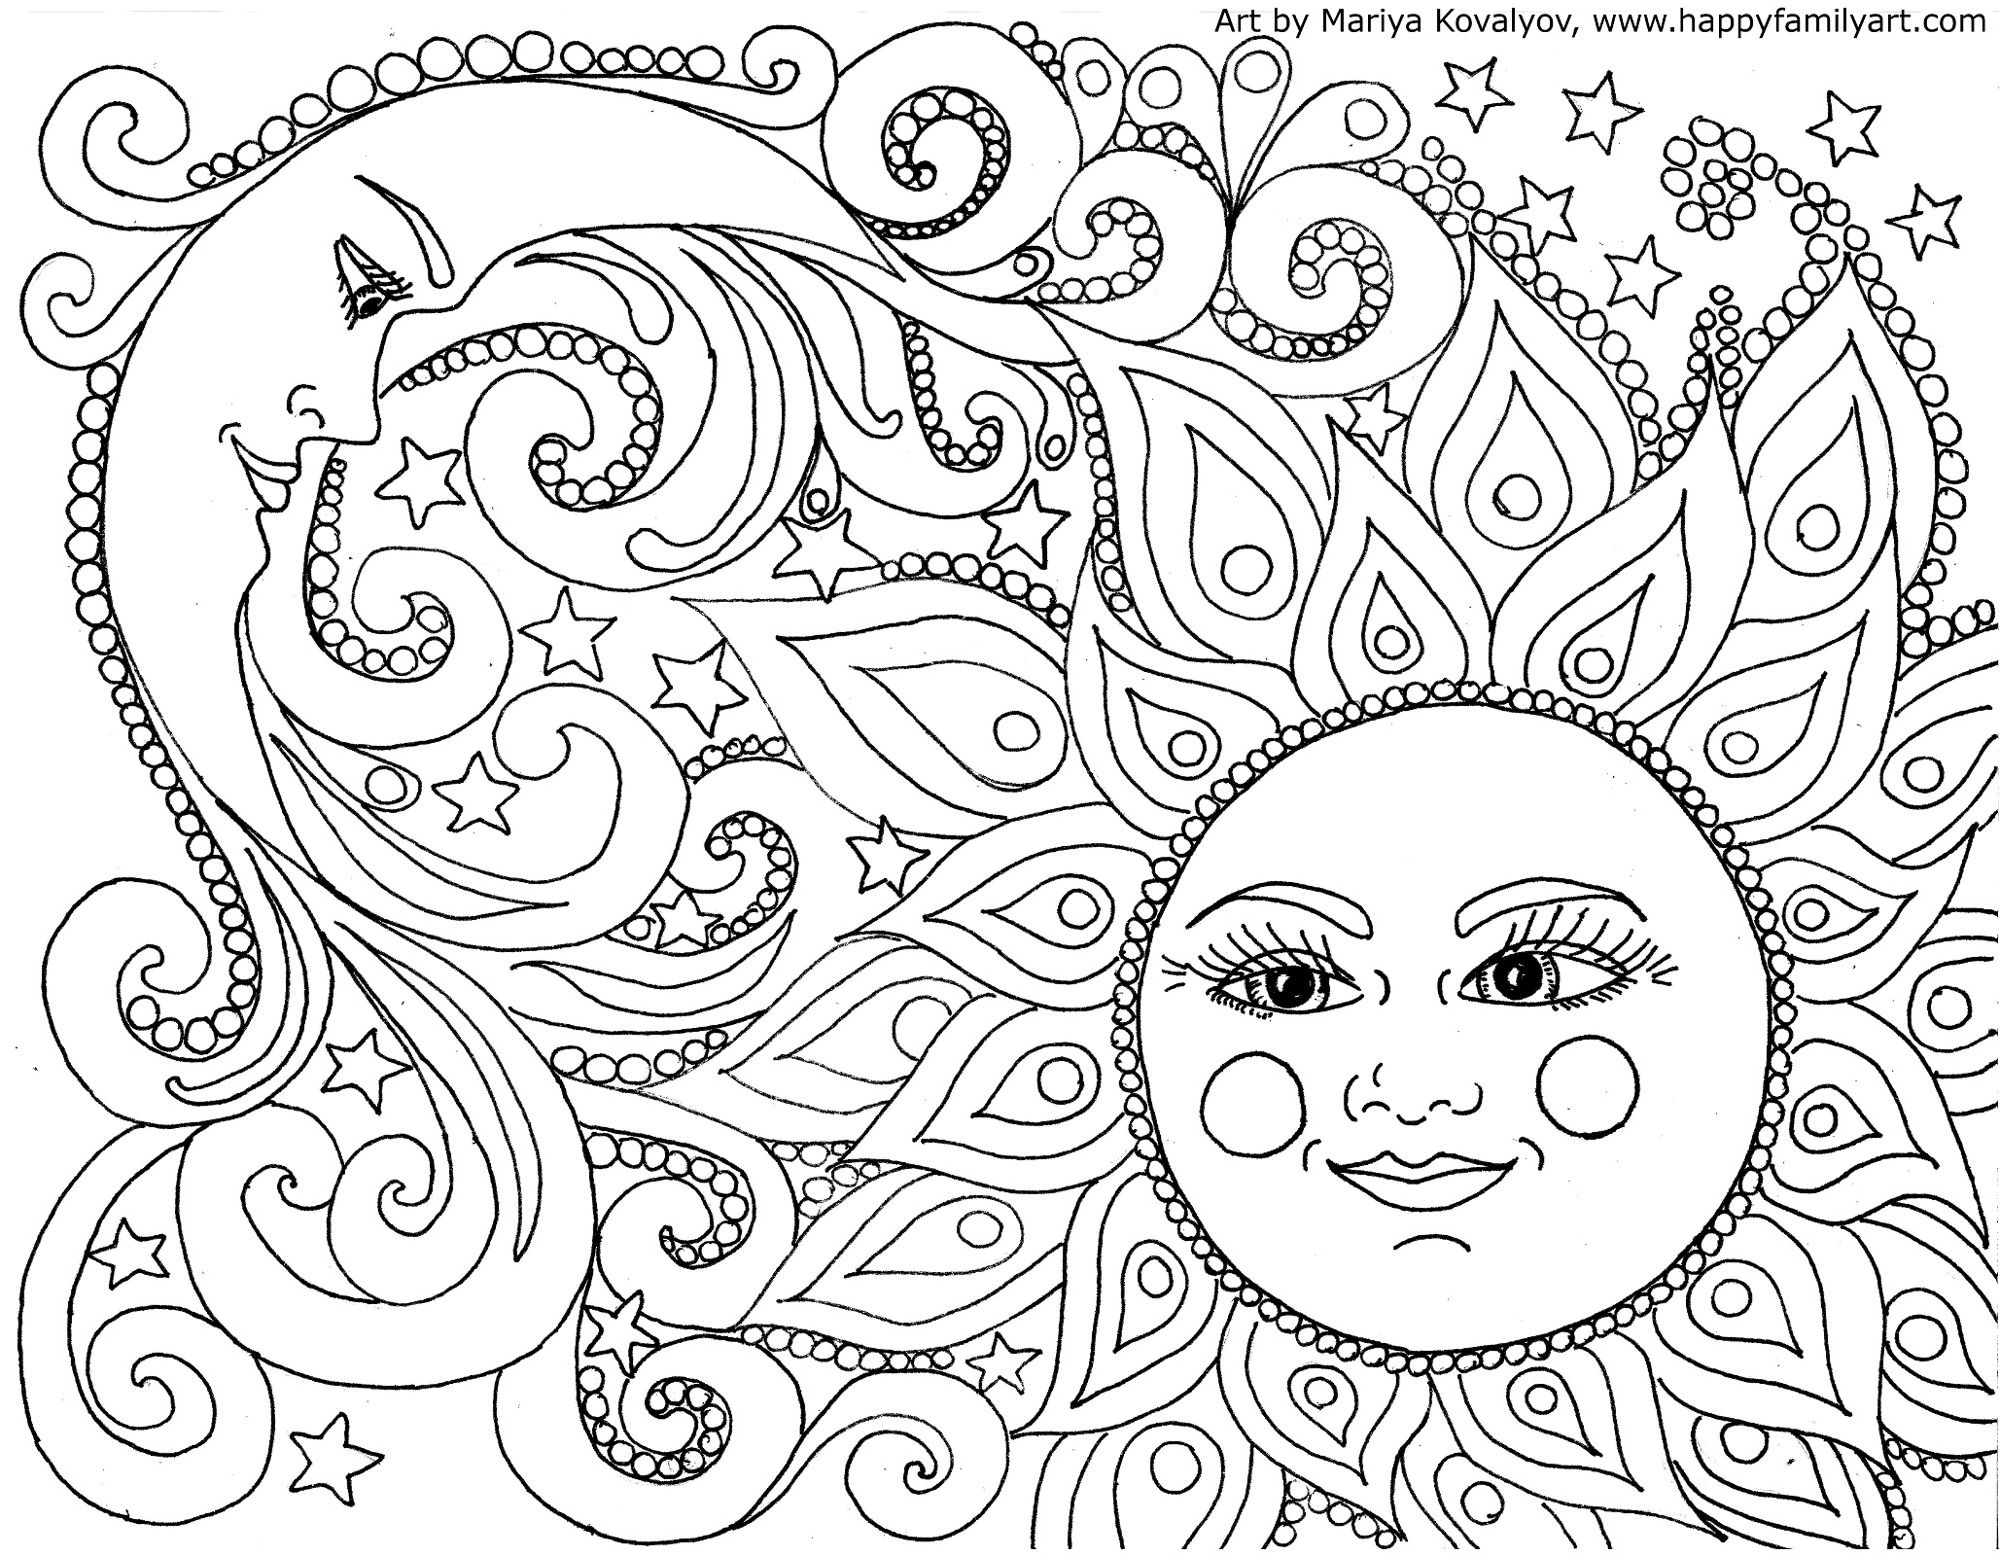 Free online printable adult coloring pages - I Made Many Great Fun And Original Coloring Pages Color Your Heart Out For The Top Adult Coloring Books And Writing Utensils Including Gel Pens